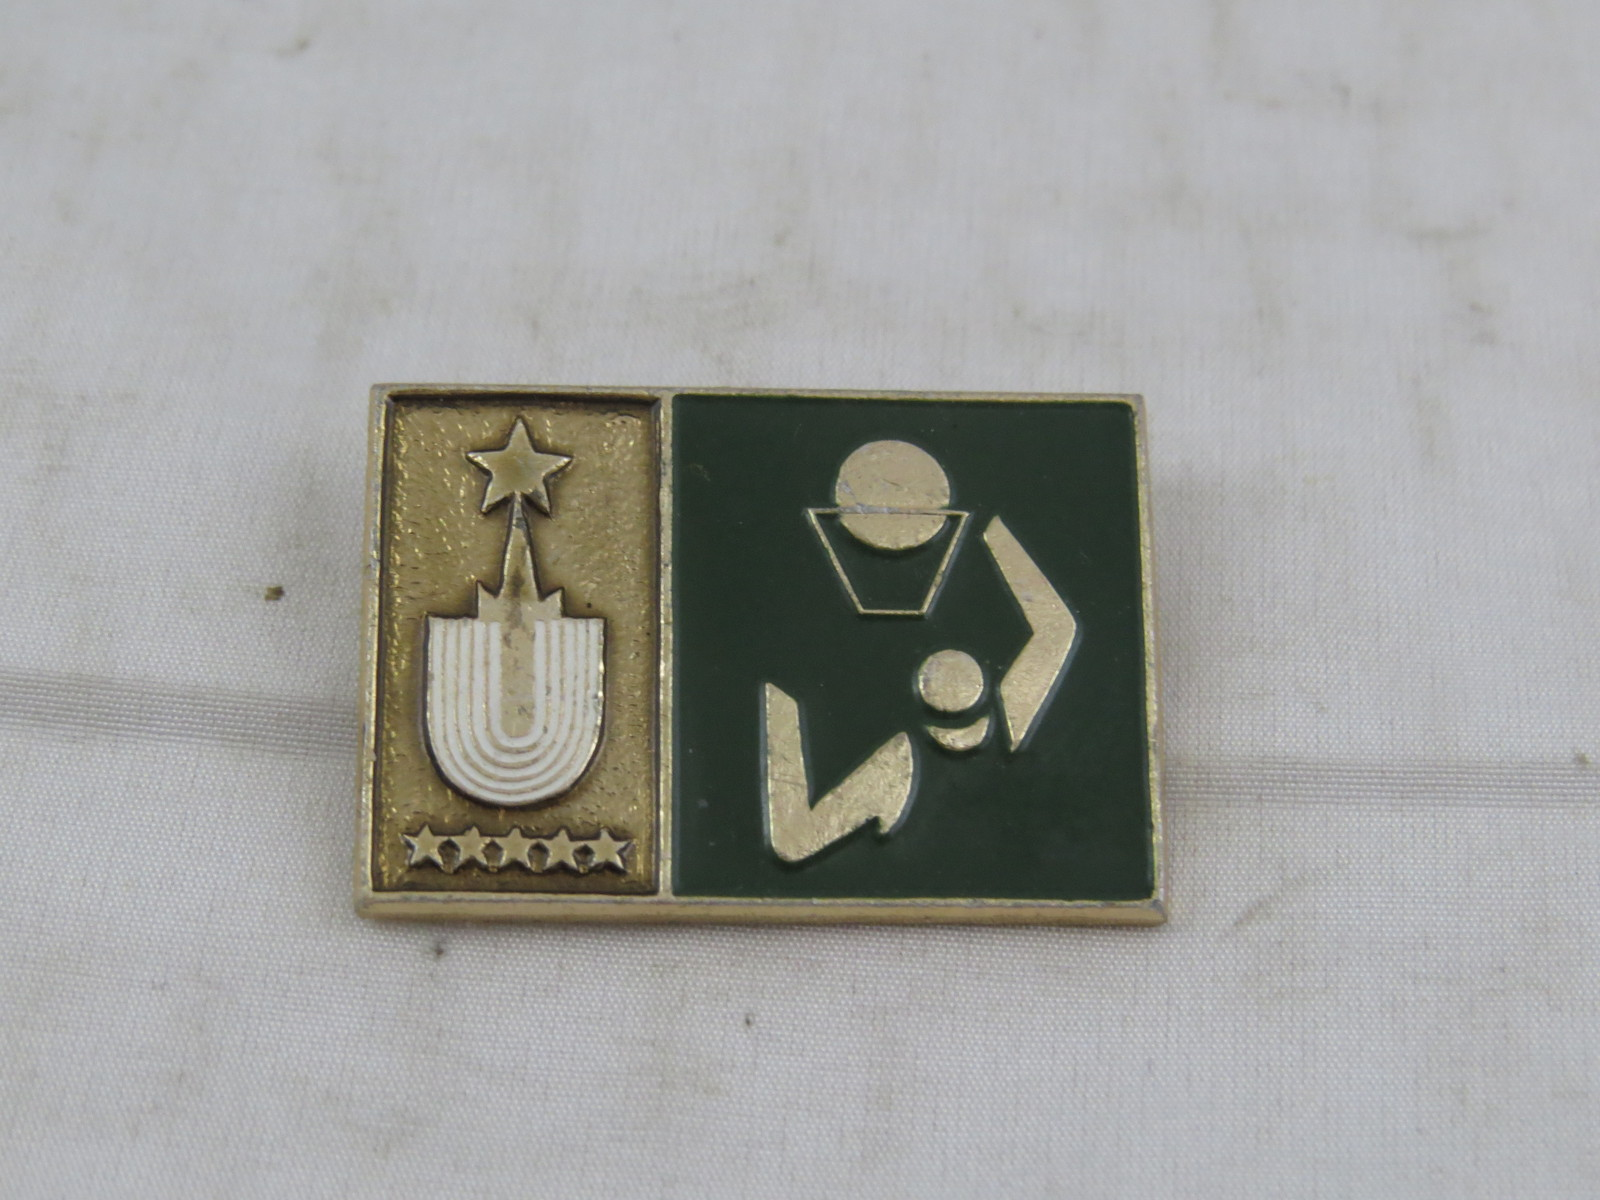 Primary image for 1980 Summer Olympic Game Pin - Basketball Event Made in the USSR - Stamped Pin